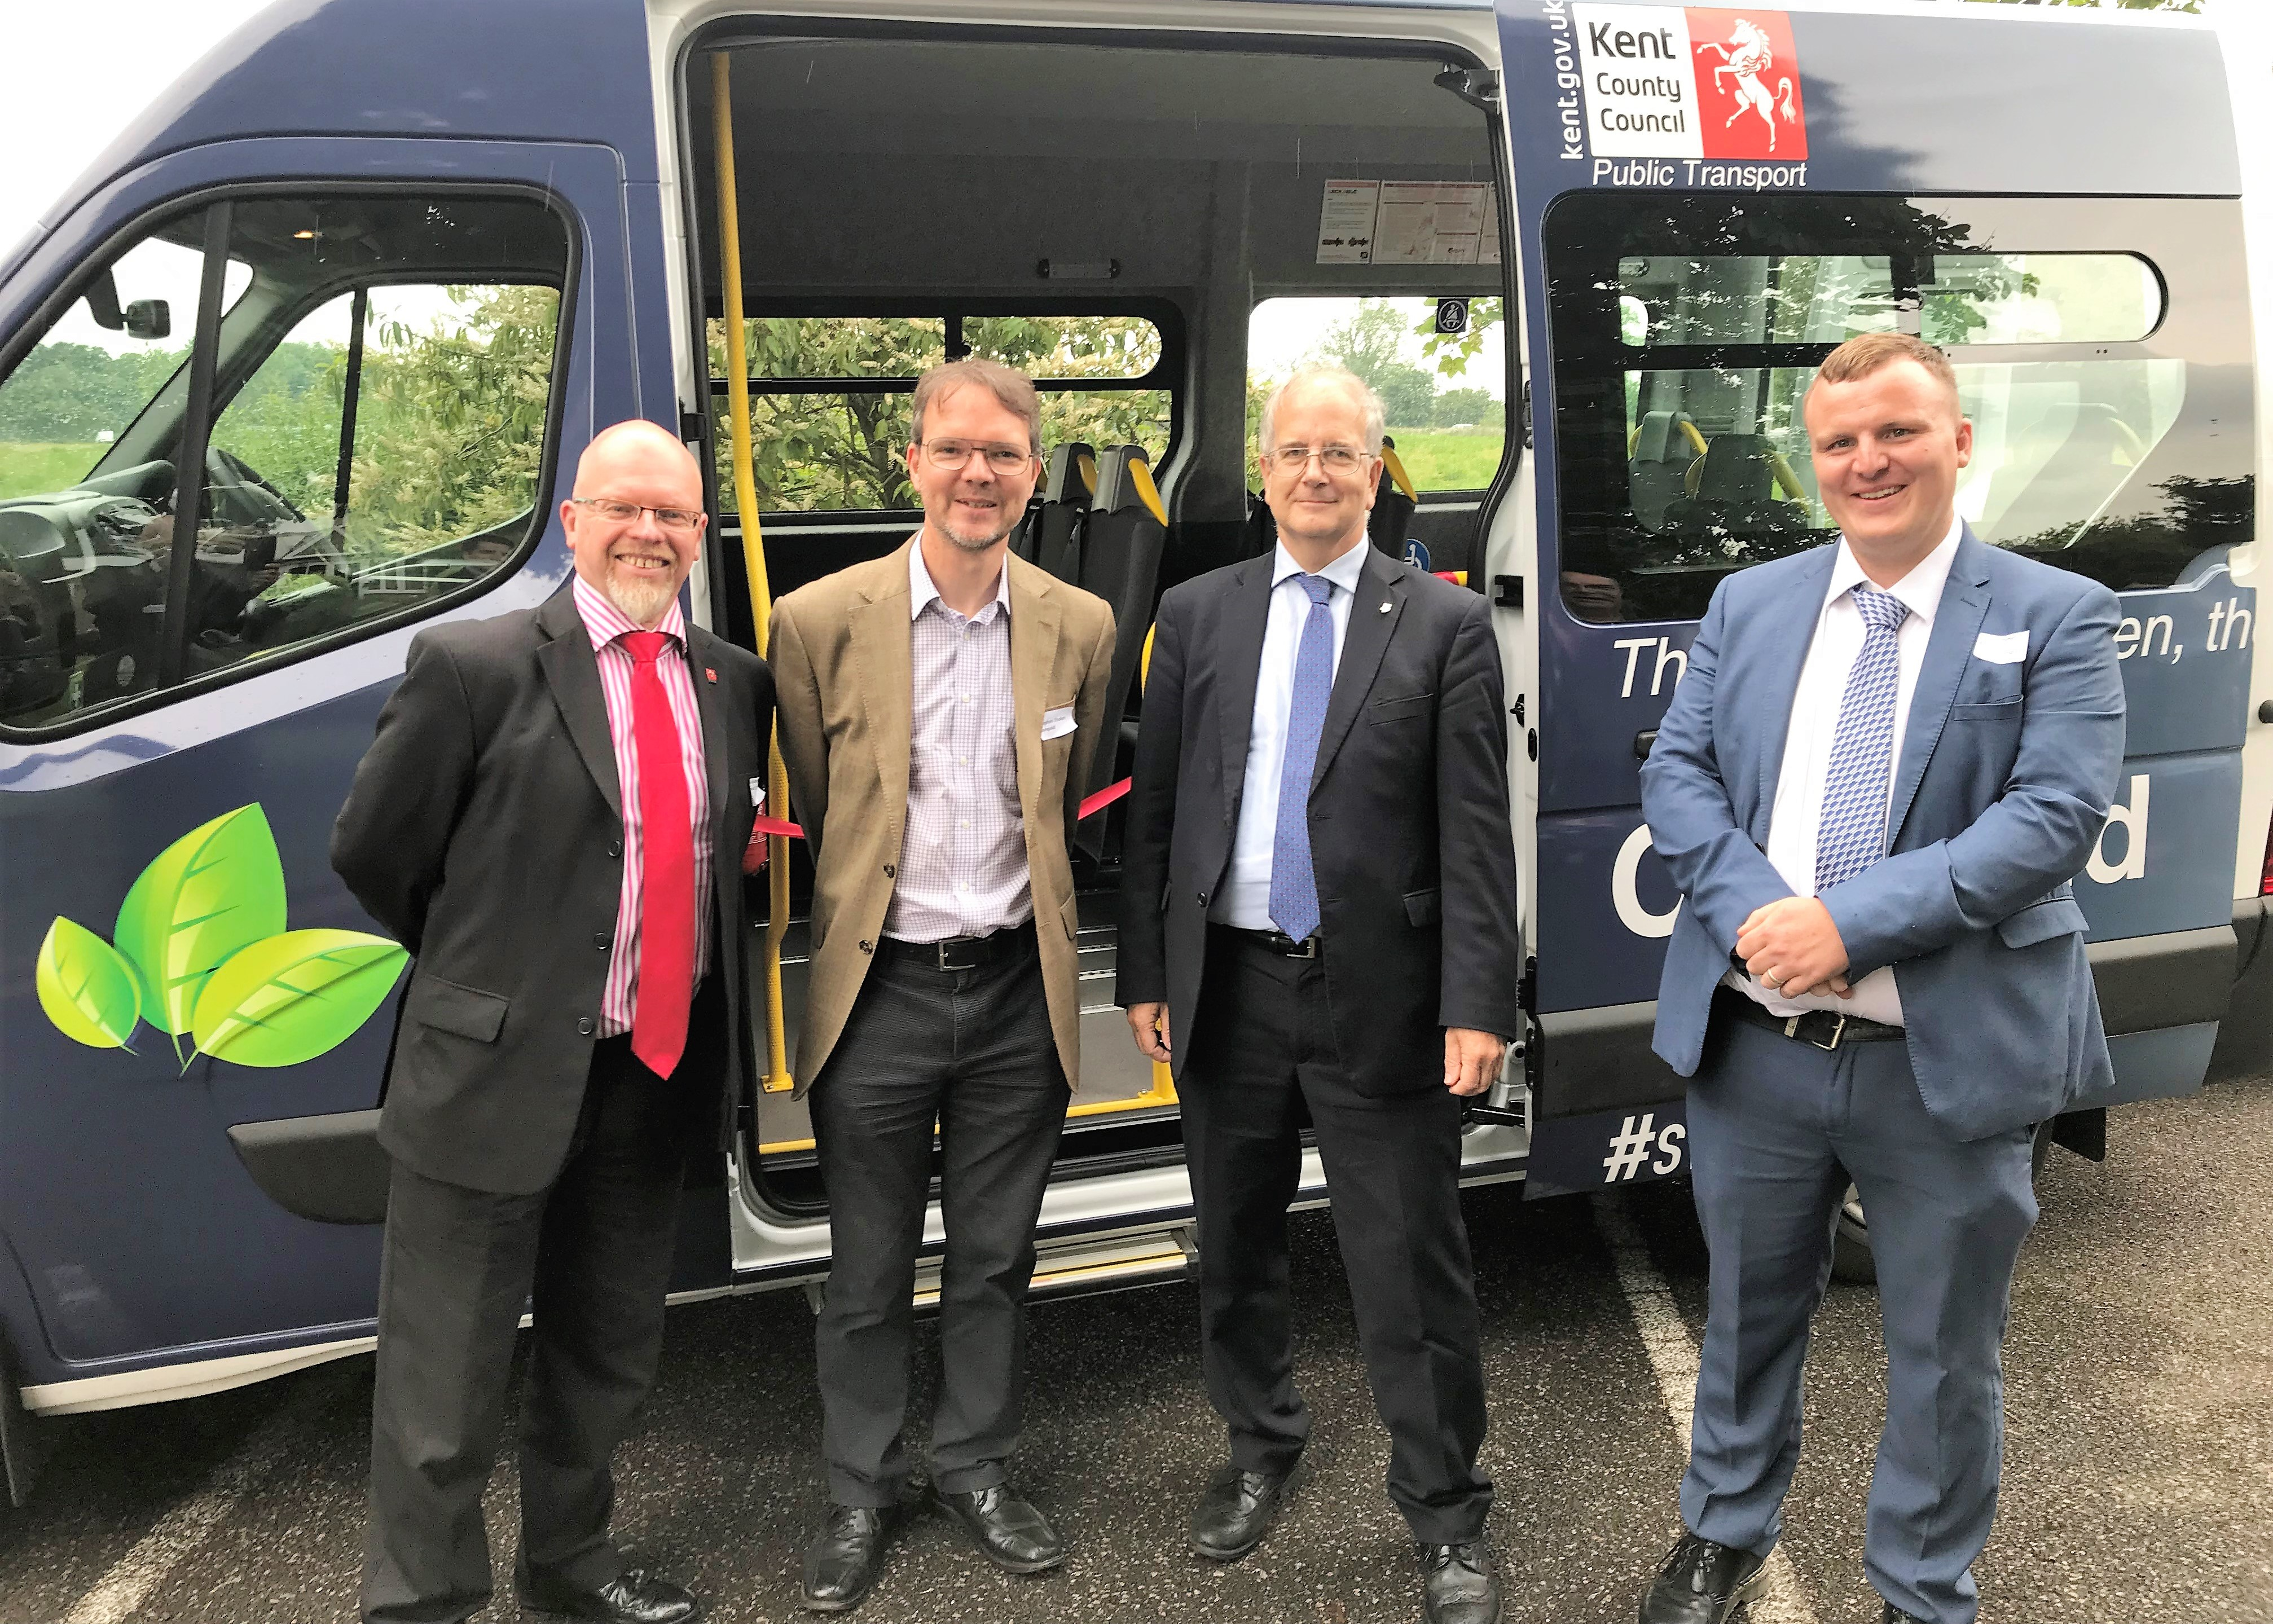 Electric minibus comes to Kent